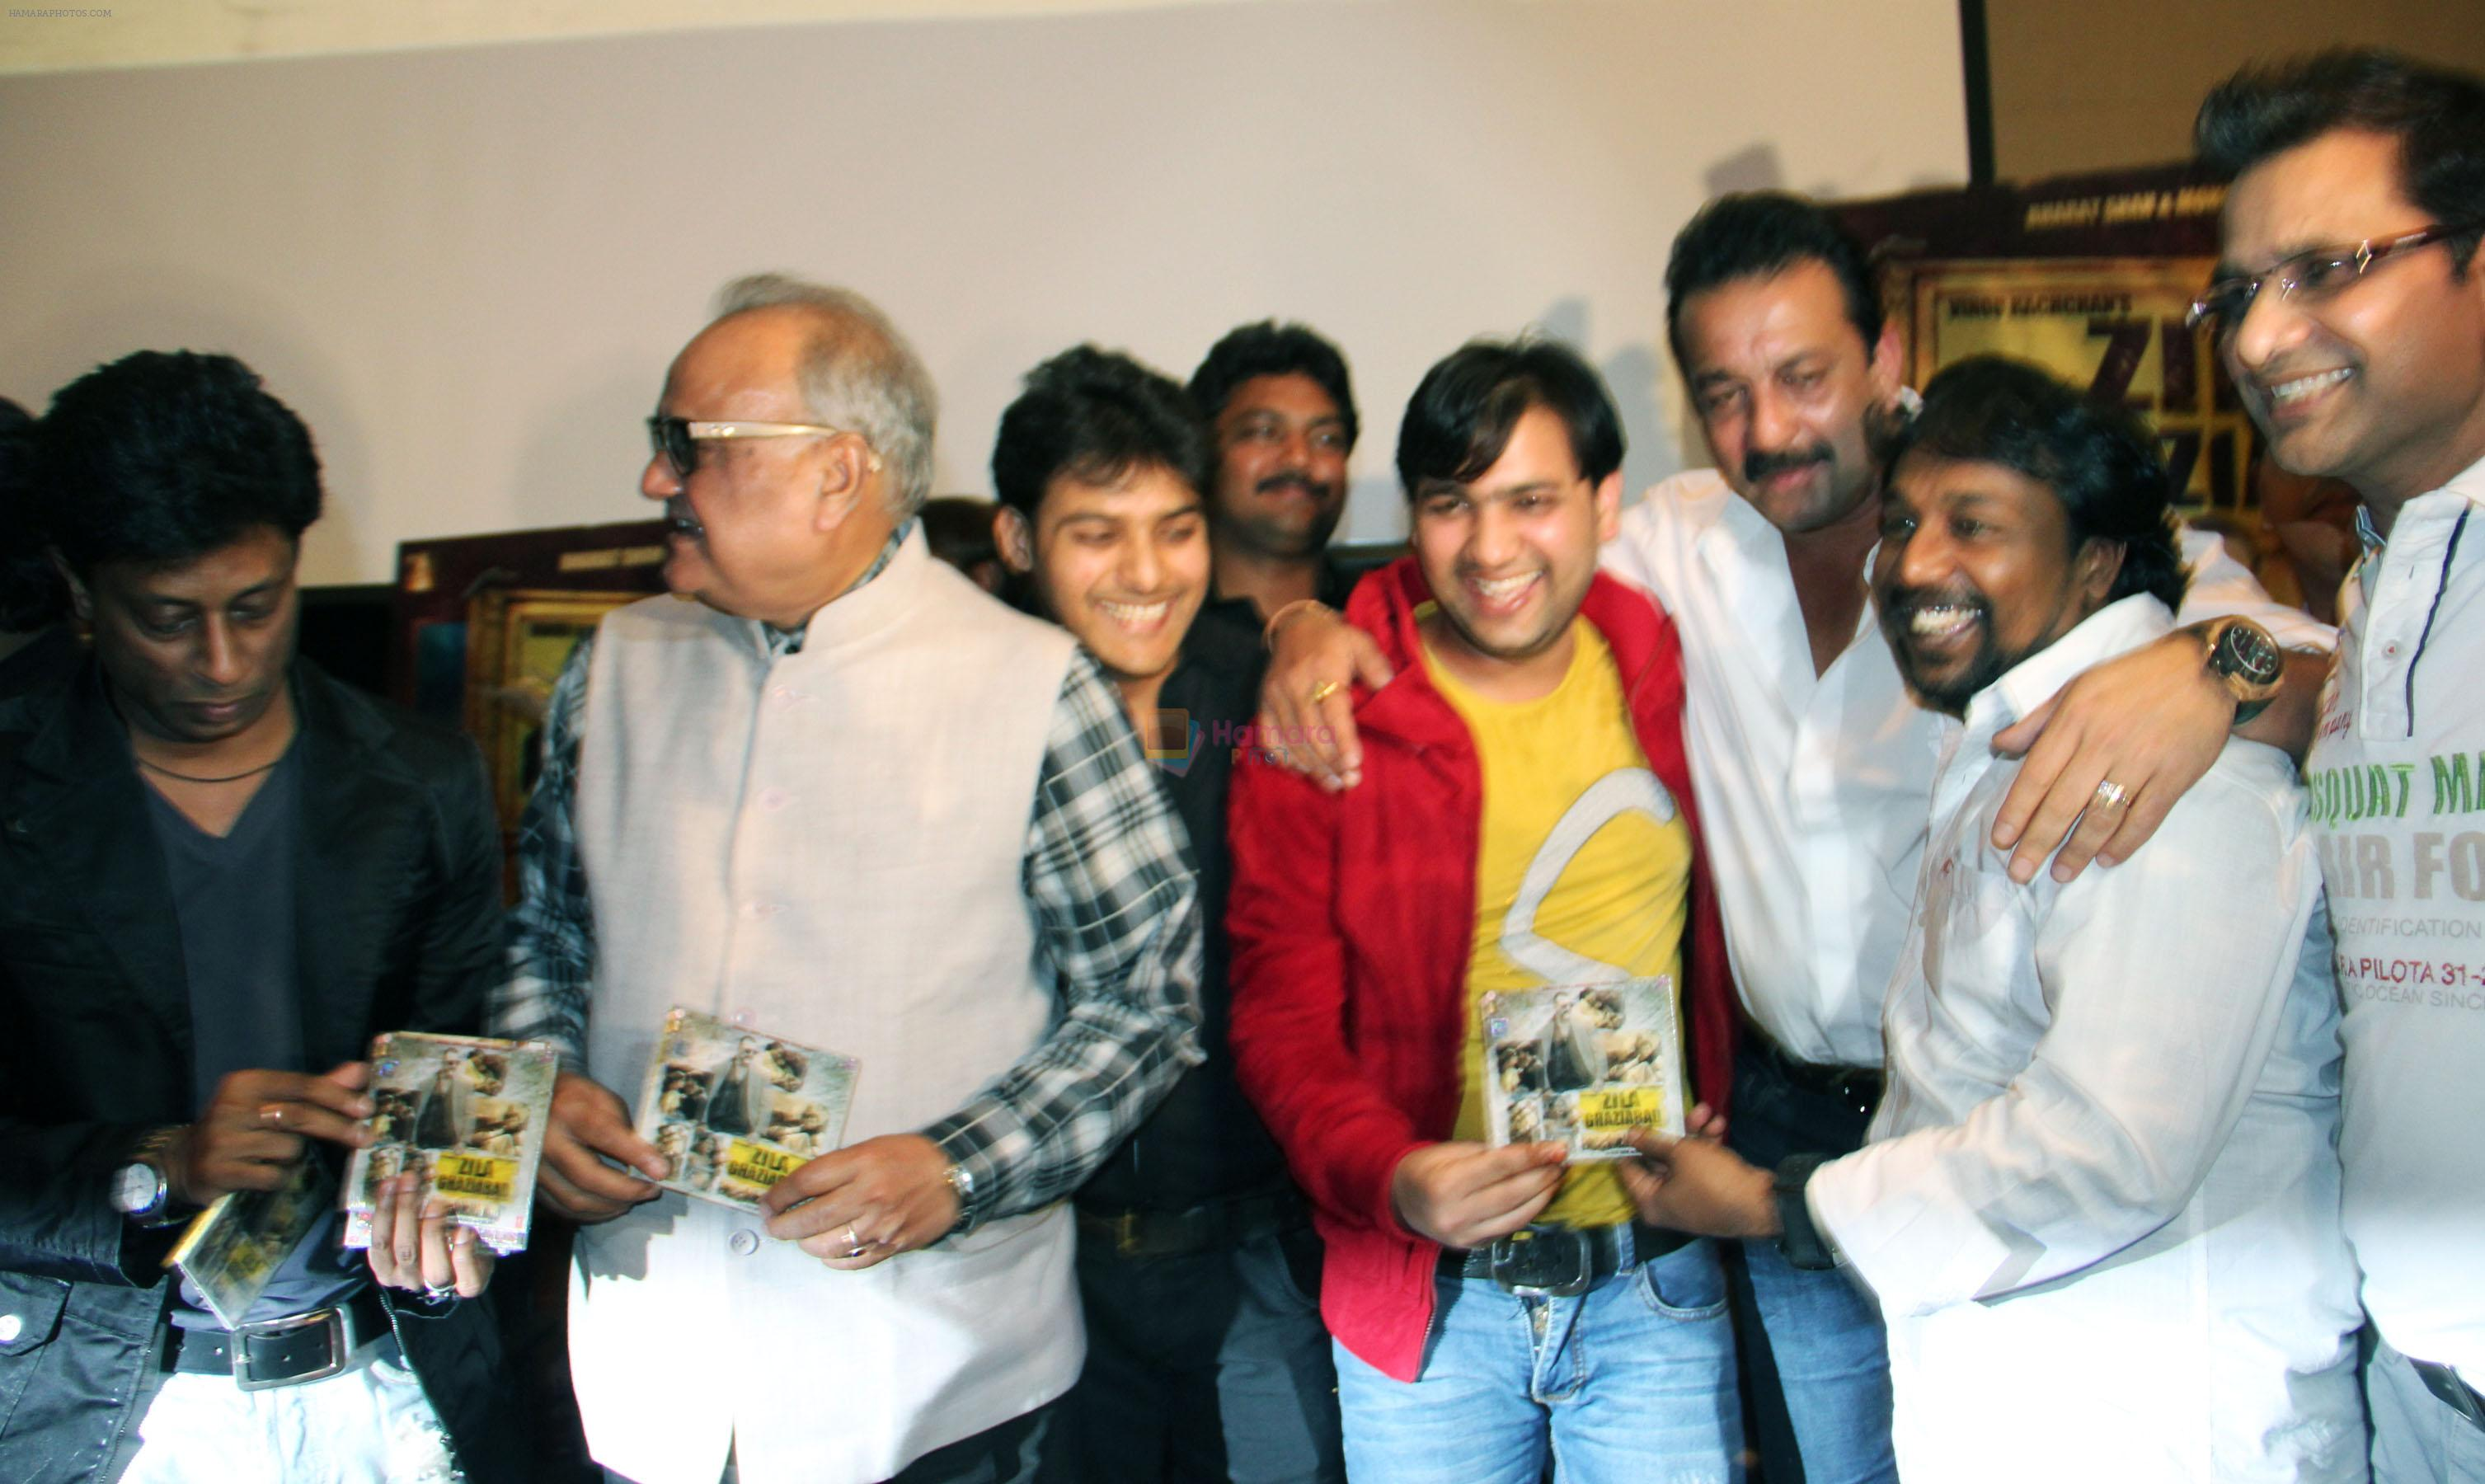 Sanjay Dutt,anand kumar,  t p agarwal, amjad  nadeem, shabbir ahmed,  vinod bachchan at the first look of film Zila Ghaziabad on 13th Feb 2013